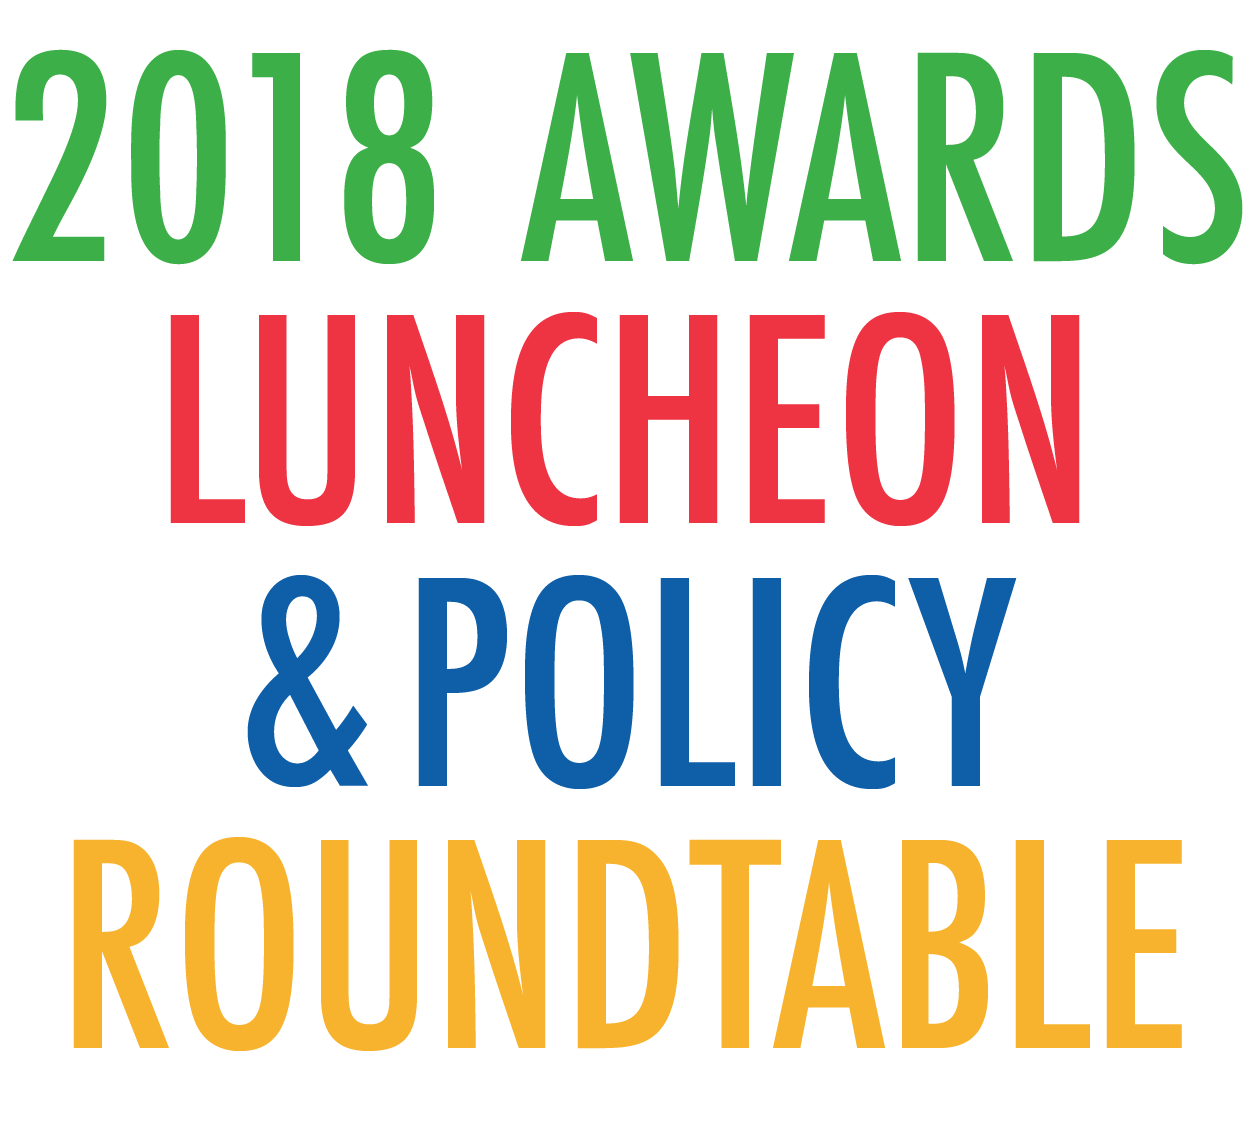 RICCF_awards_lunch_wording.png